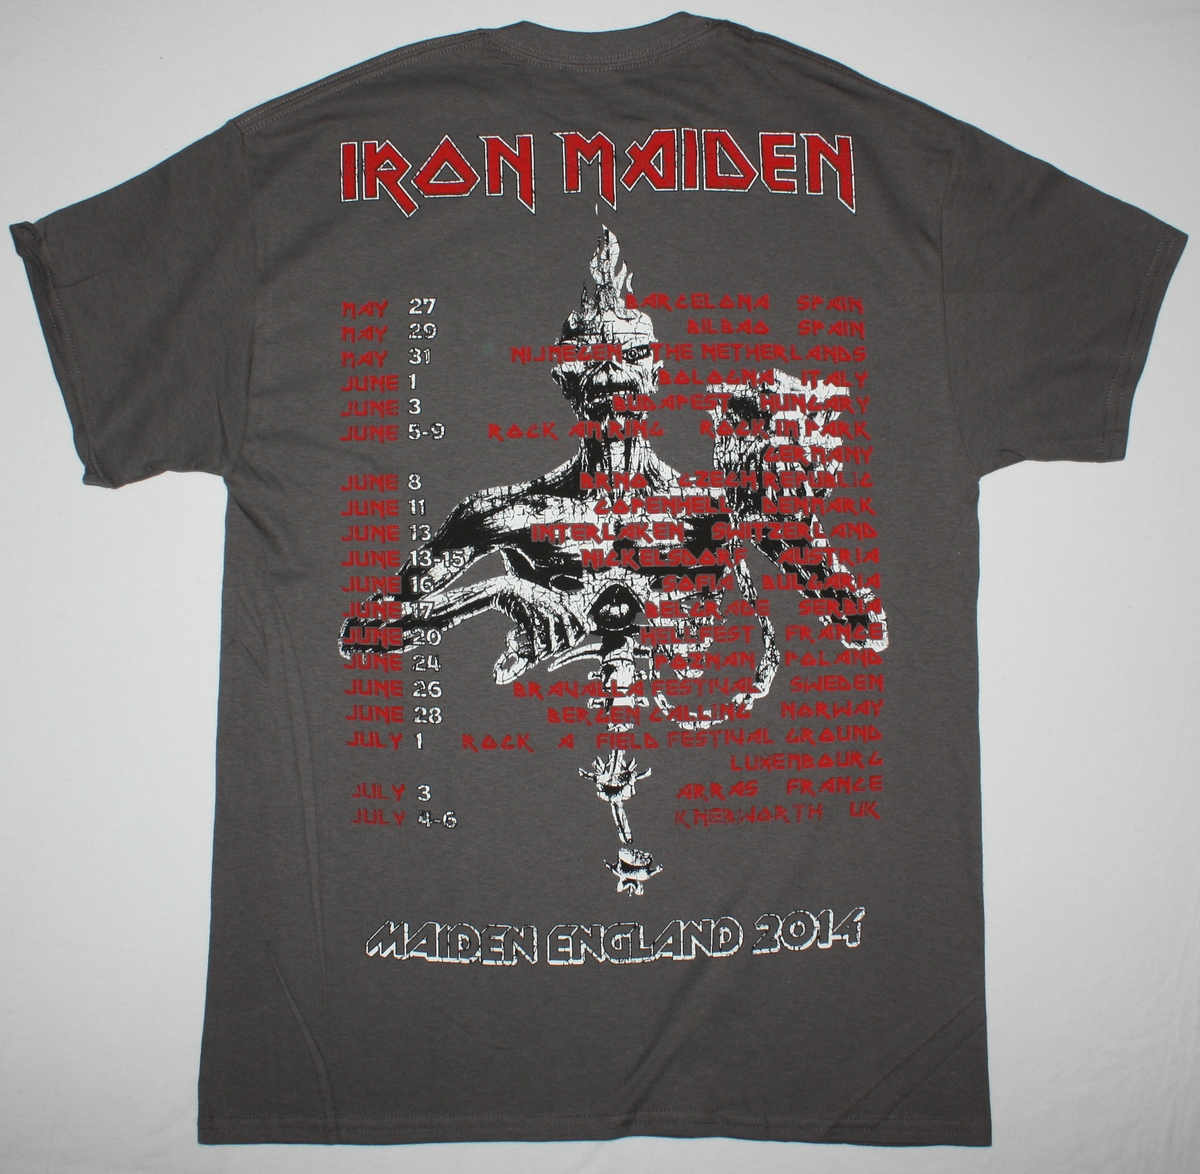 IRON MAIDEN MAIDEN ENGLAND TOUR 2014 NEW GREY CHARCOAL T-SHIRT